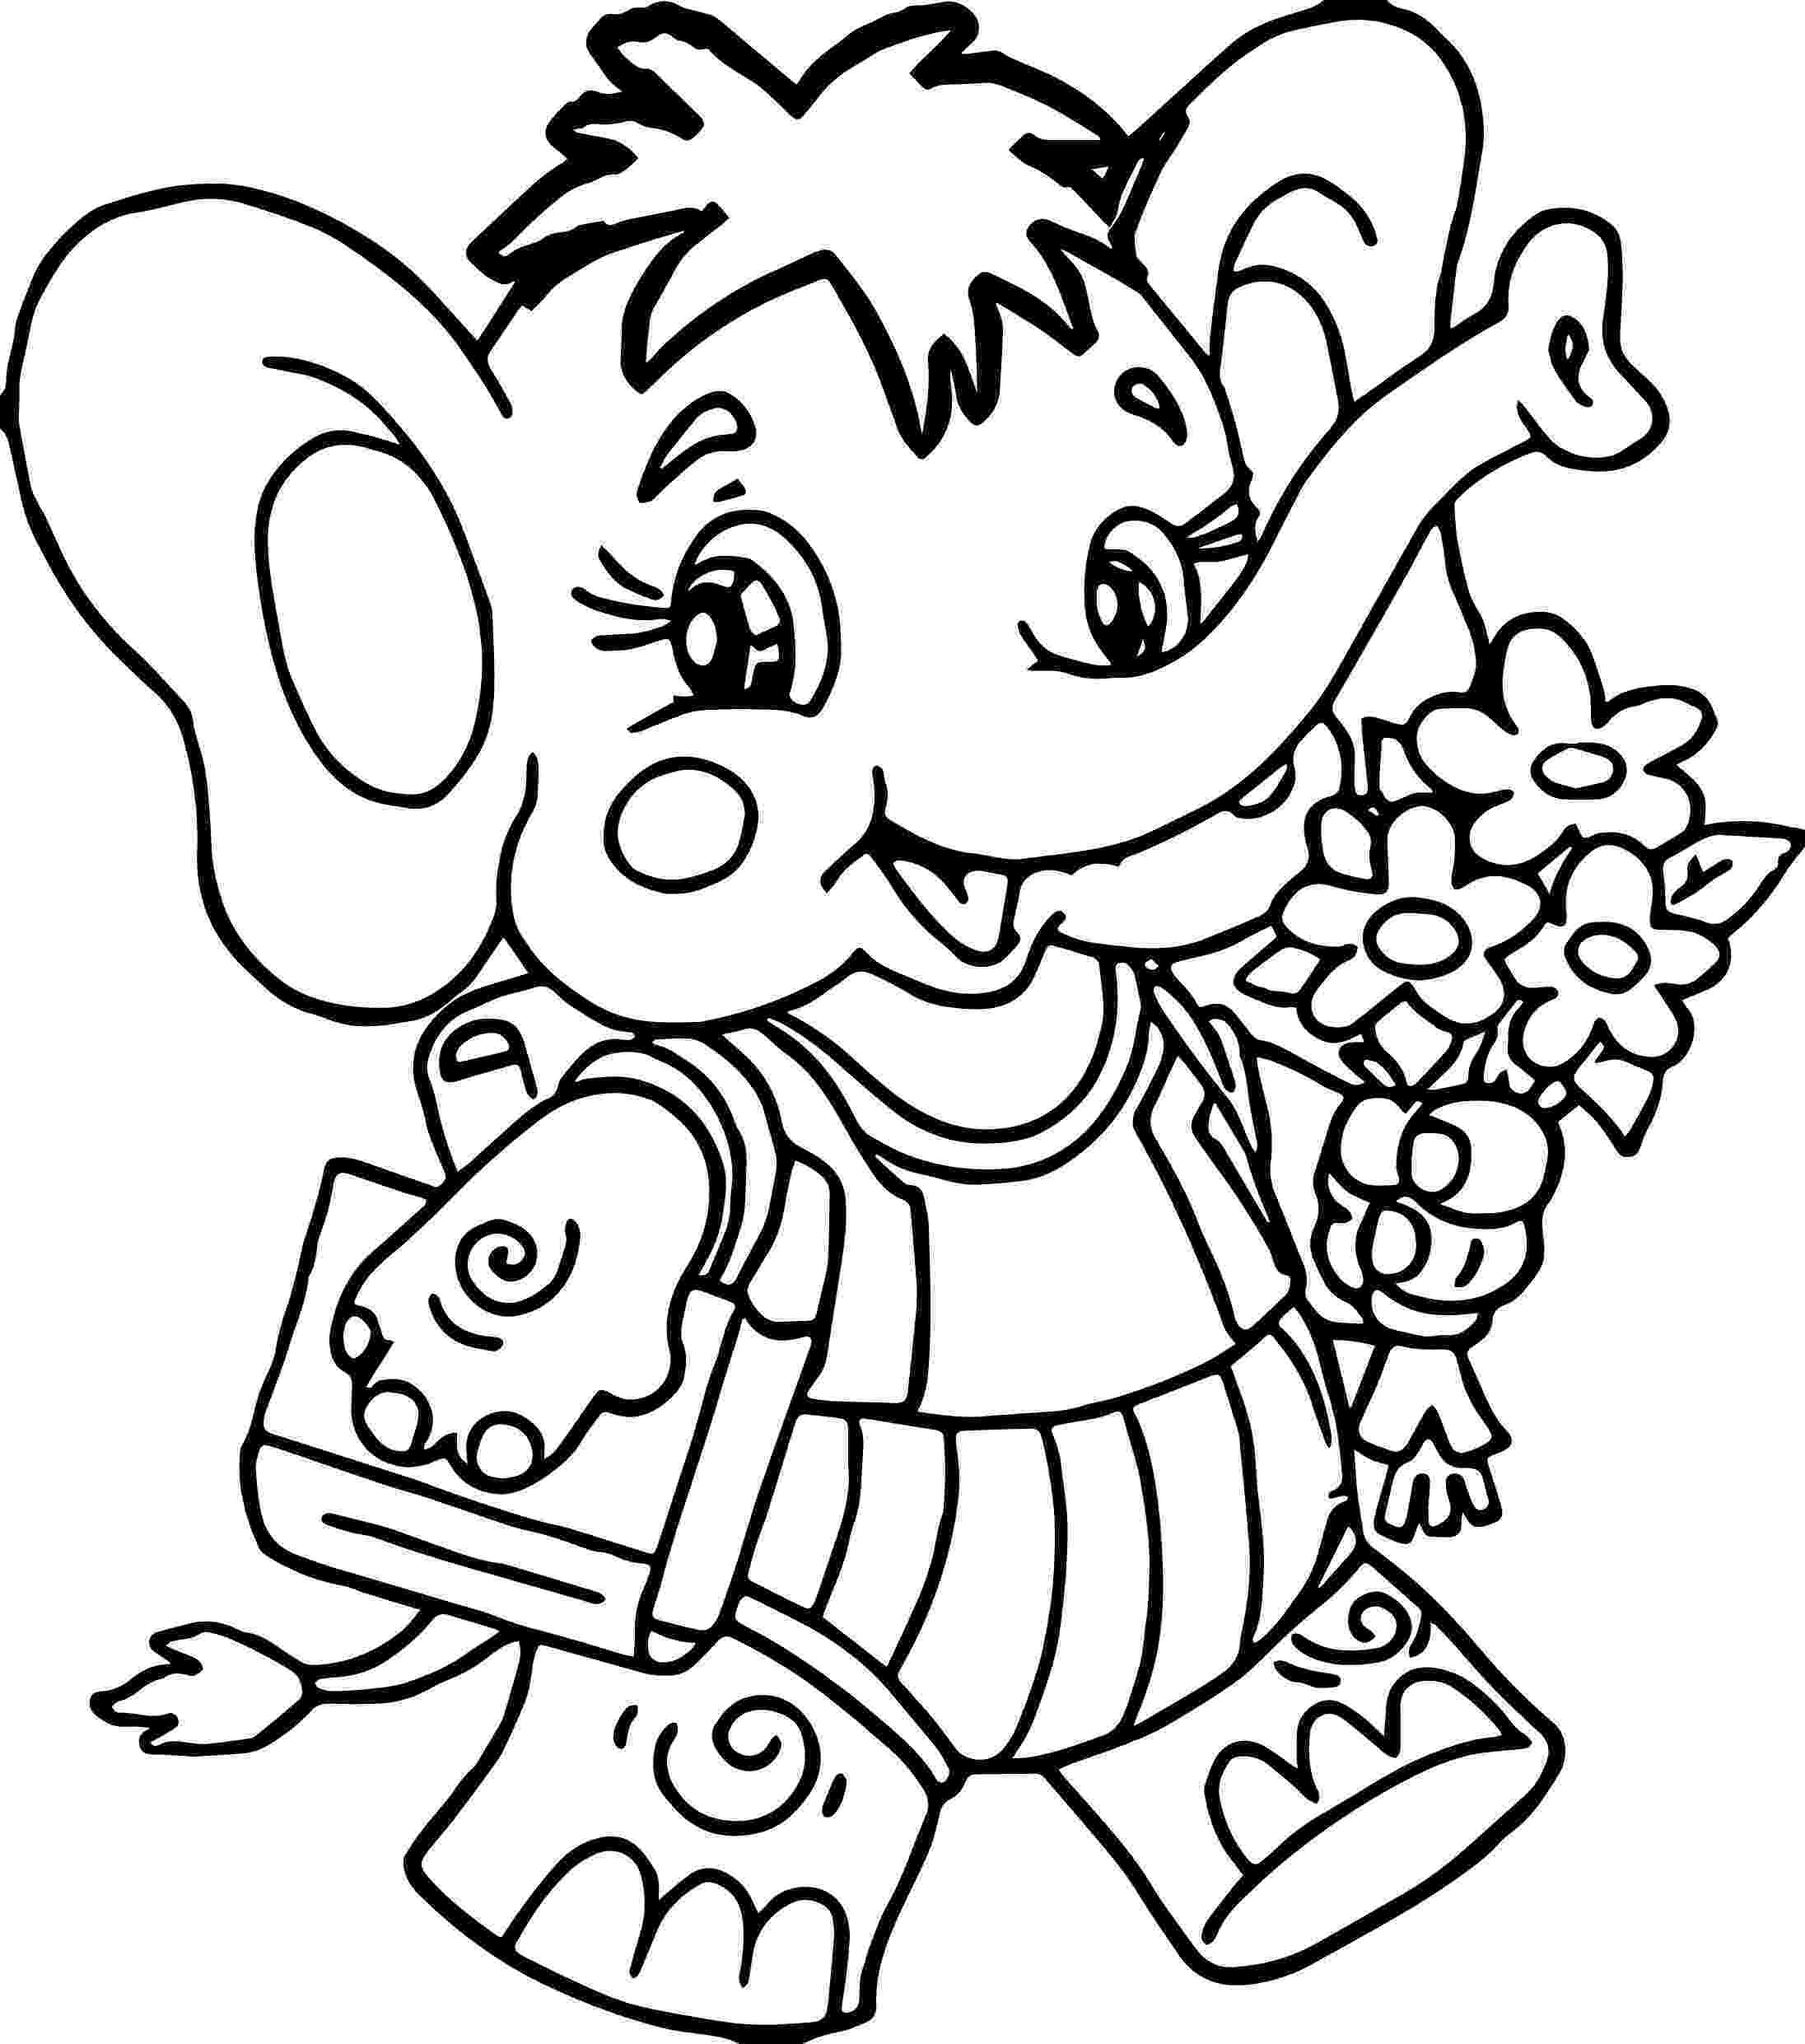 floral elephant coloring page elephant with flower coloring page wecoloringpagecom elephant page floral coloring